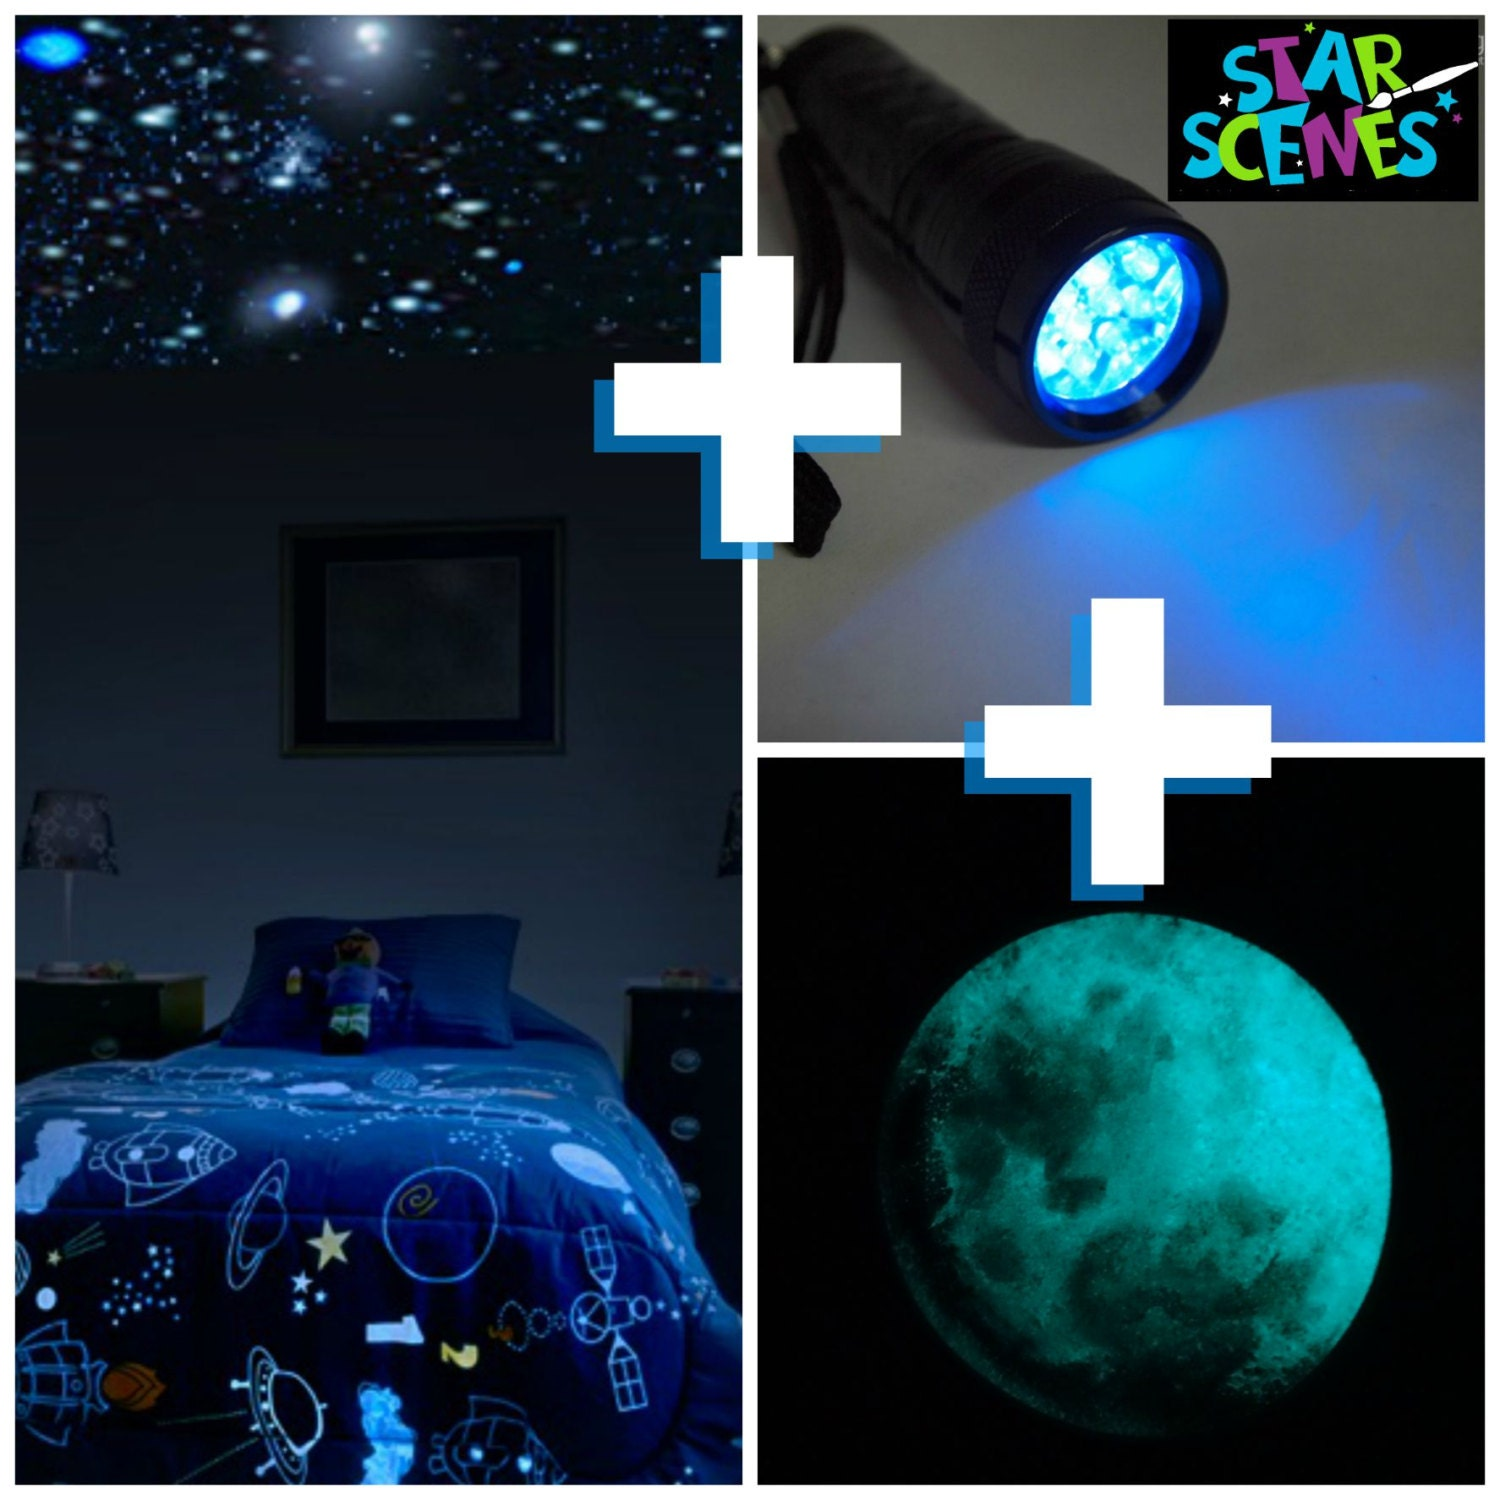 Bedroom ceiling lights stars -  Zoom